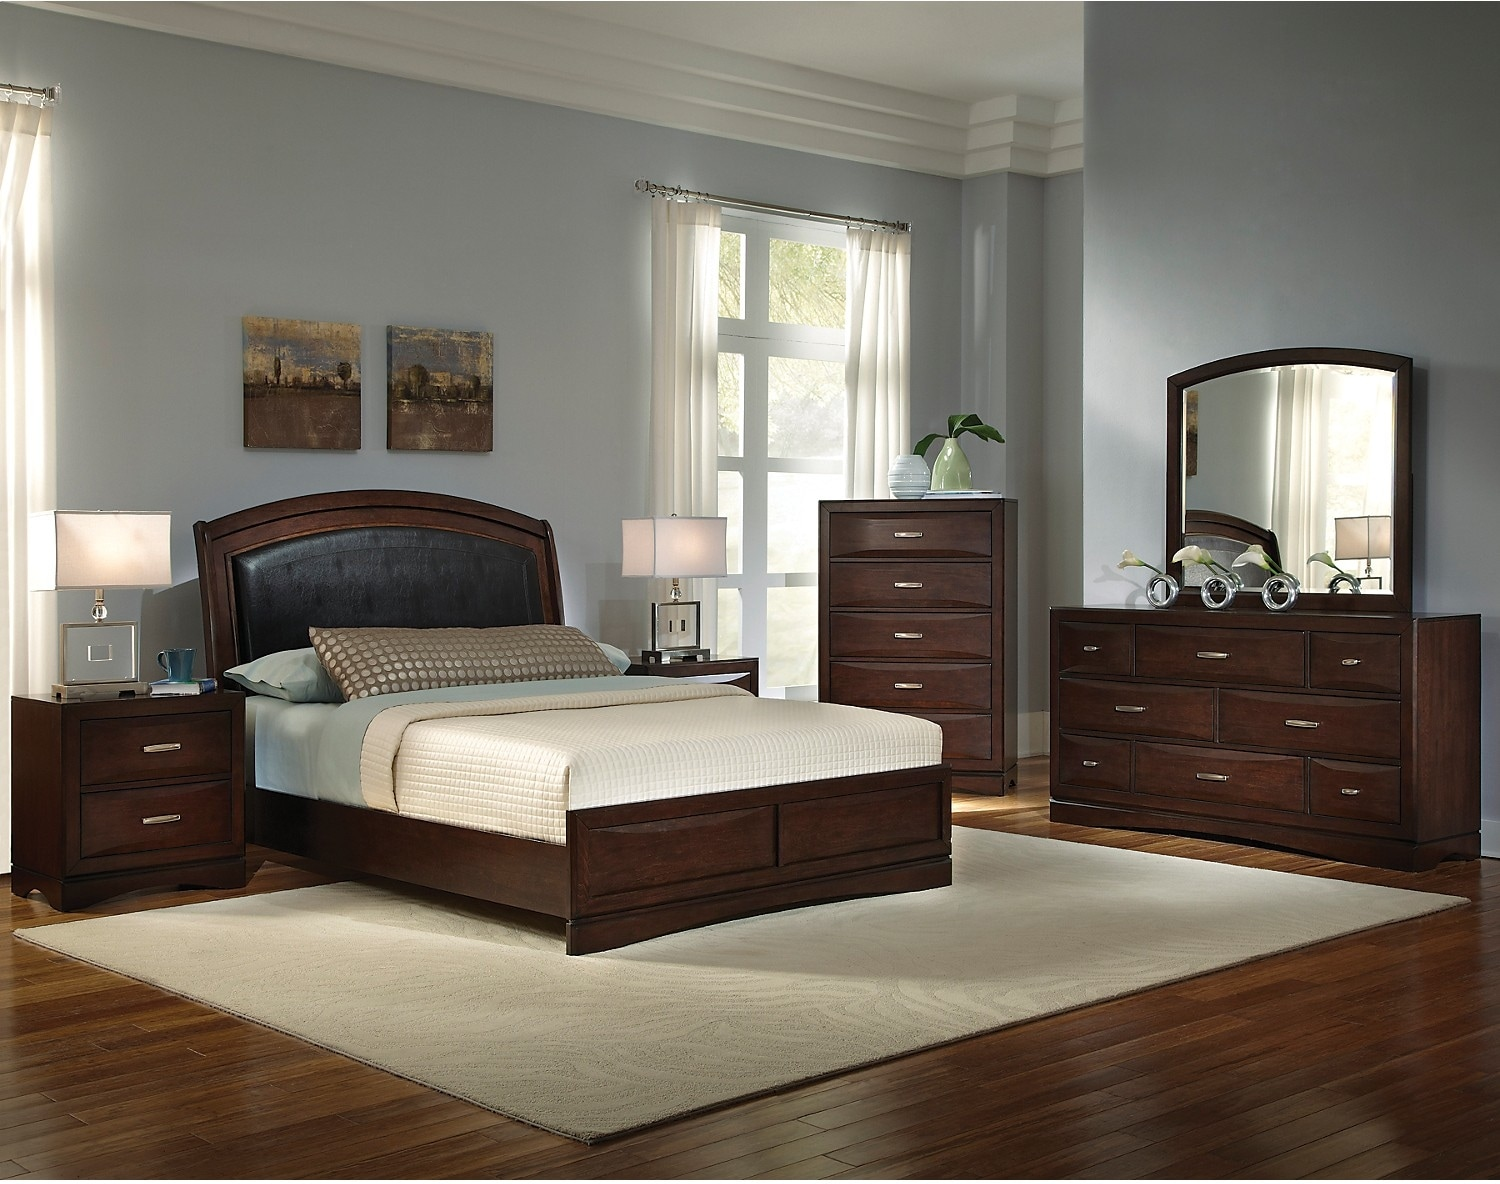 Bedroom Furniture - Beverly 5-Piece Queen Bedroom Package